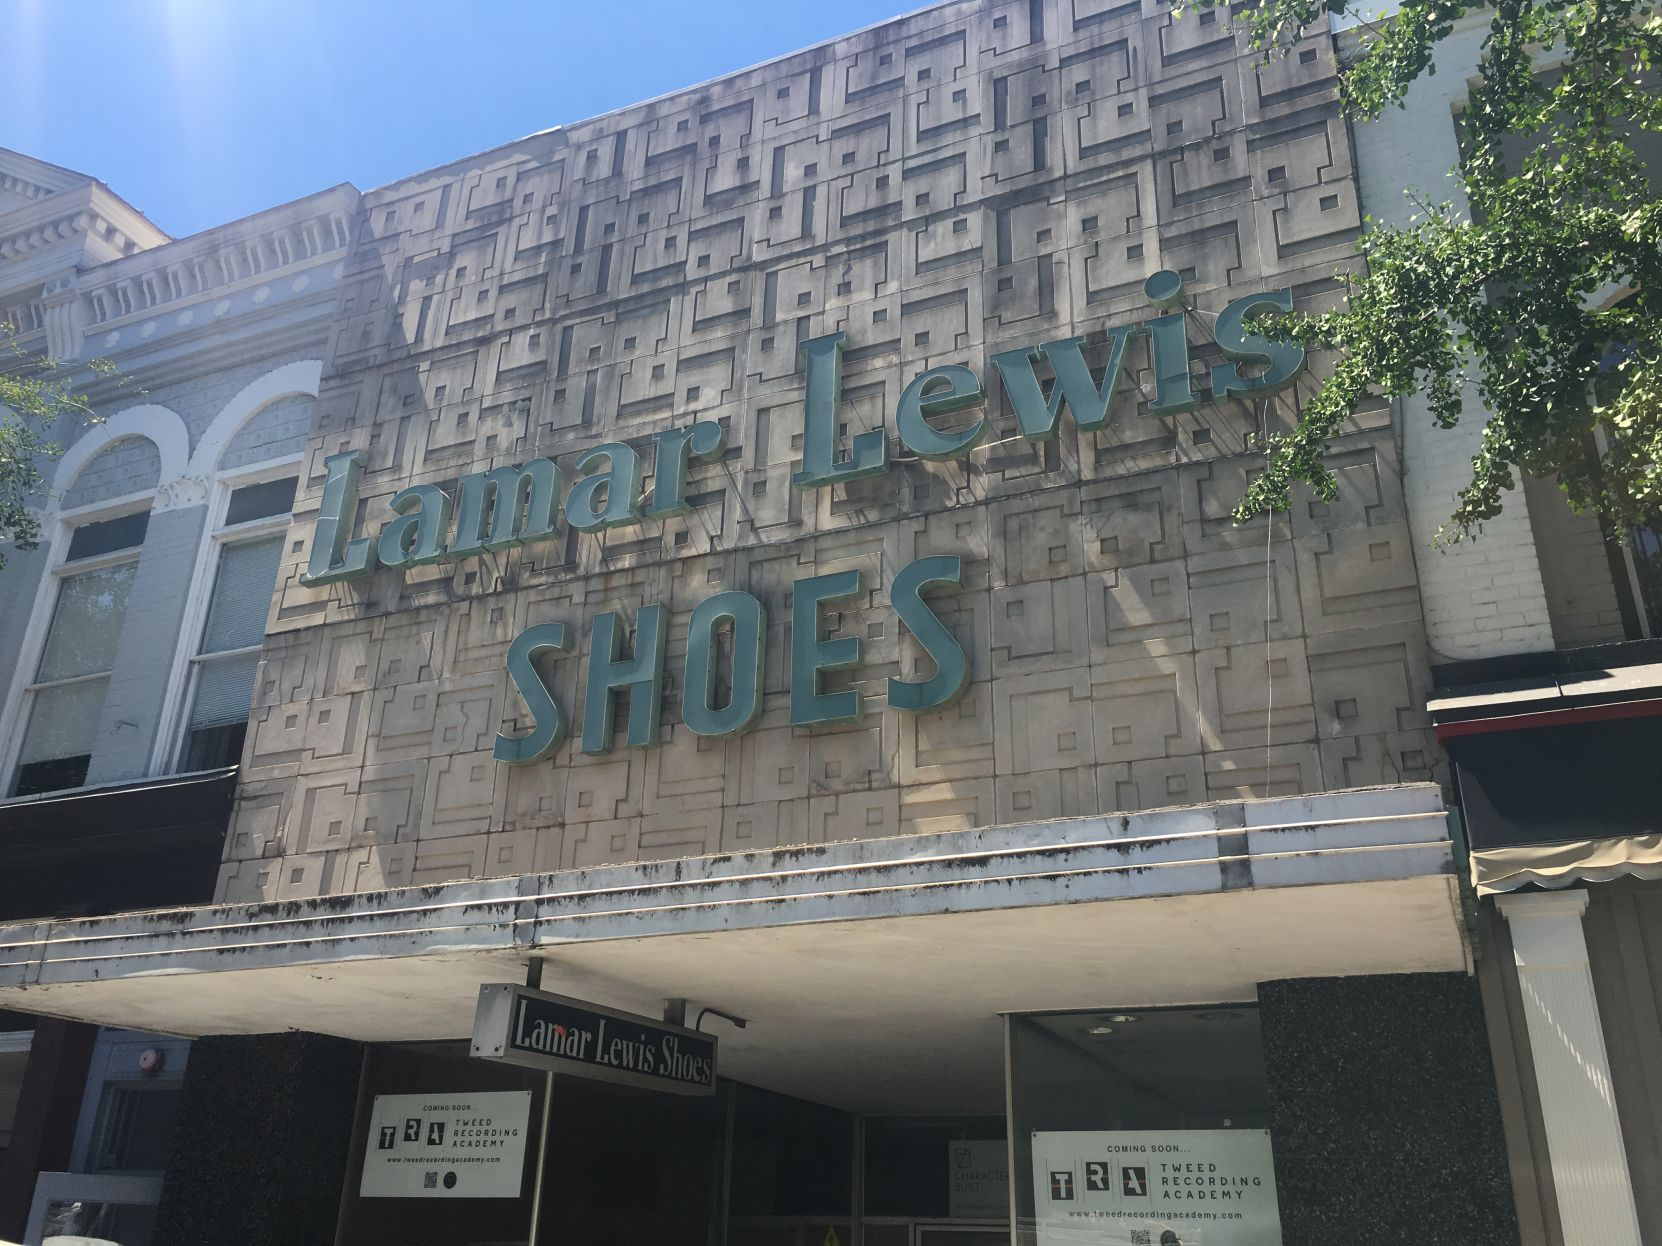 Tweed Recording to occupy the space left by Lamar Lewis Shoe Store downtown - Red & Black | July 12, 2018